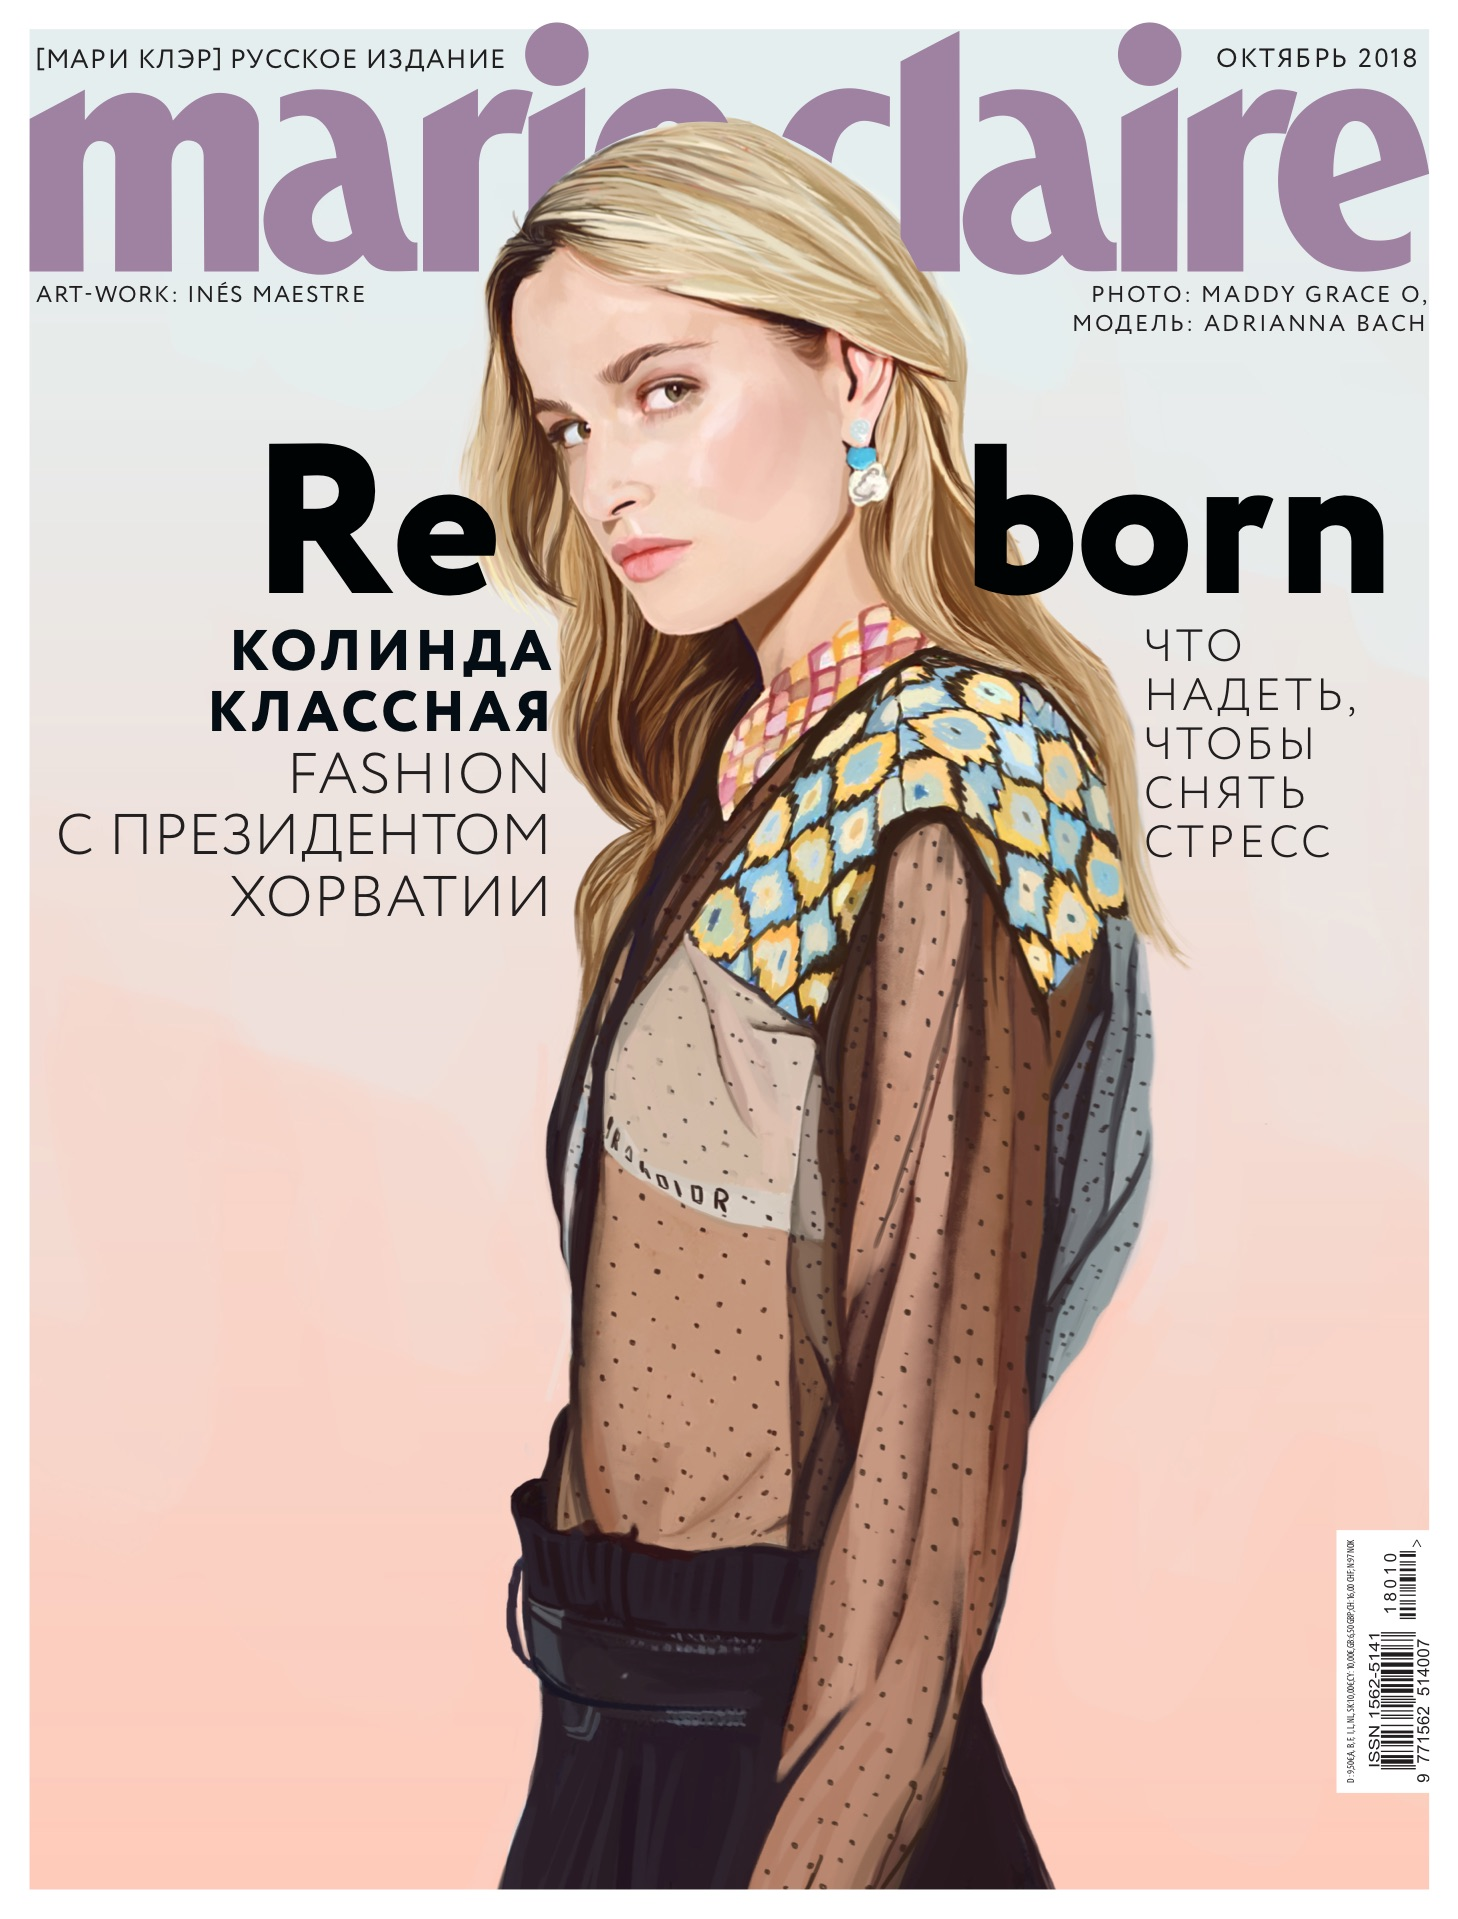 Marie-Claire Russia - October cover